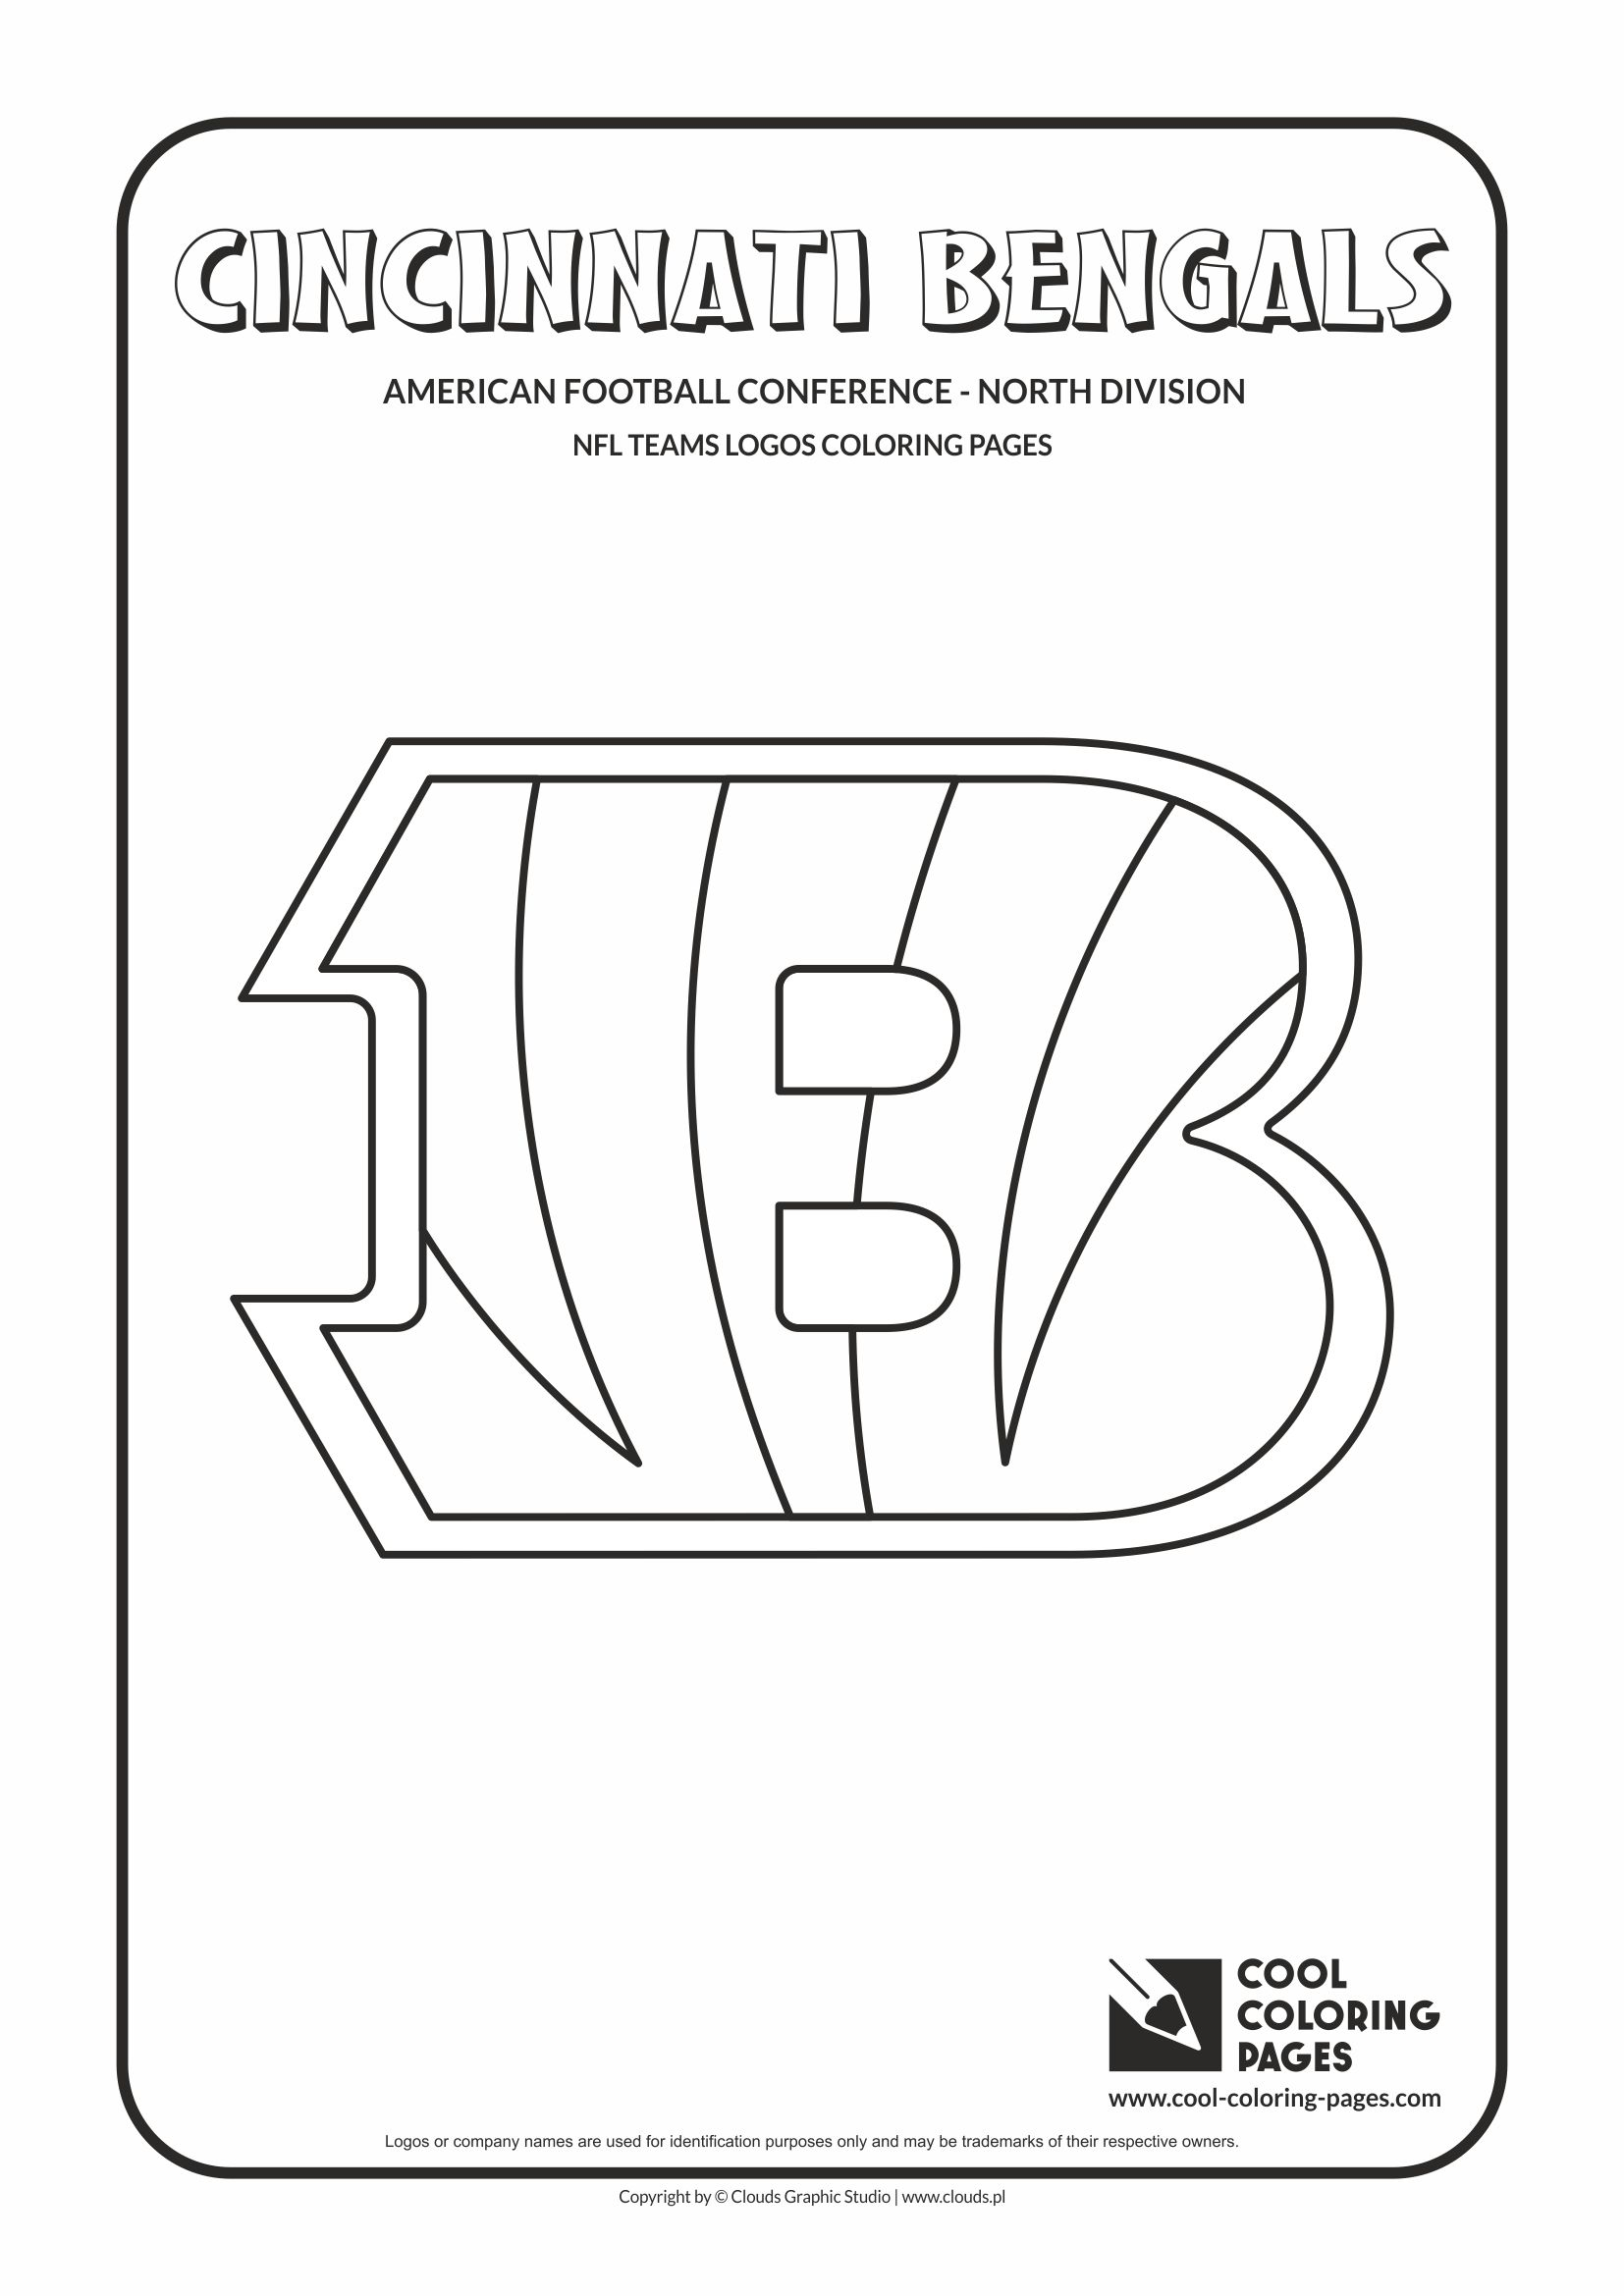 Cool Coloring Pages - NFL American Football Clubs Logos - American Football Conference - North Division / Cincinnati Bengals logo / Coloring page with Cincinnati Bengals logo